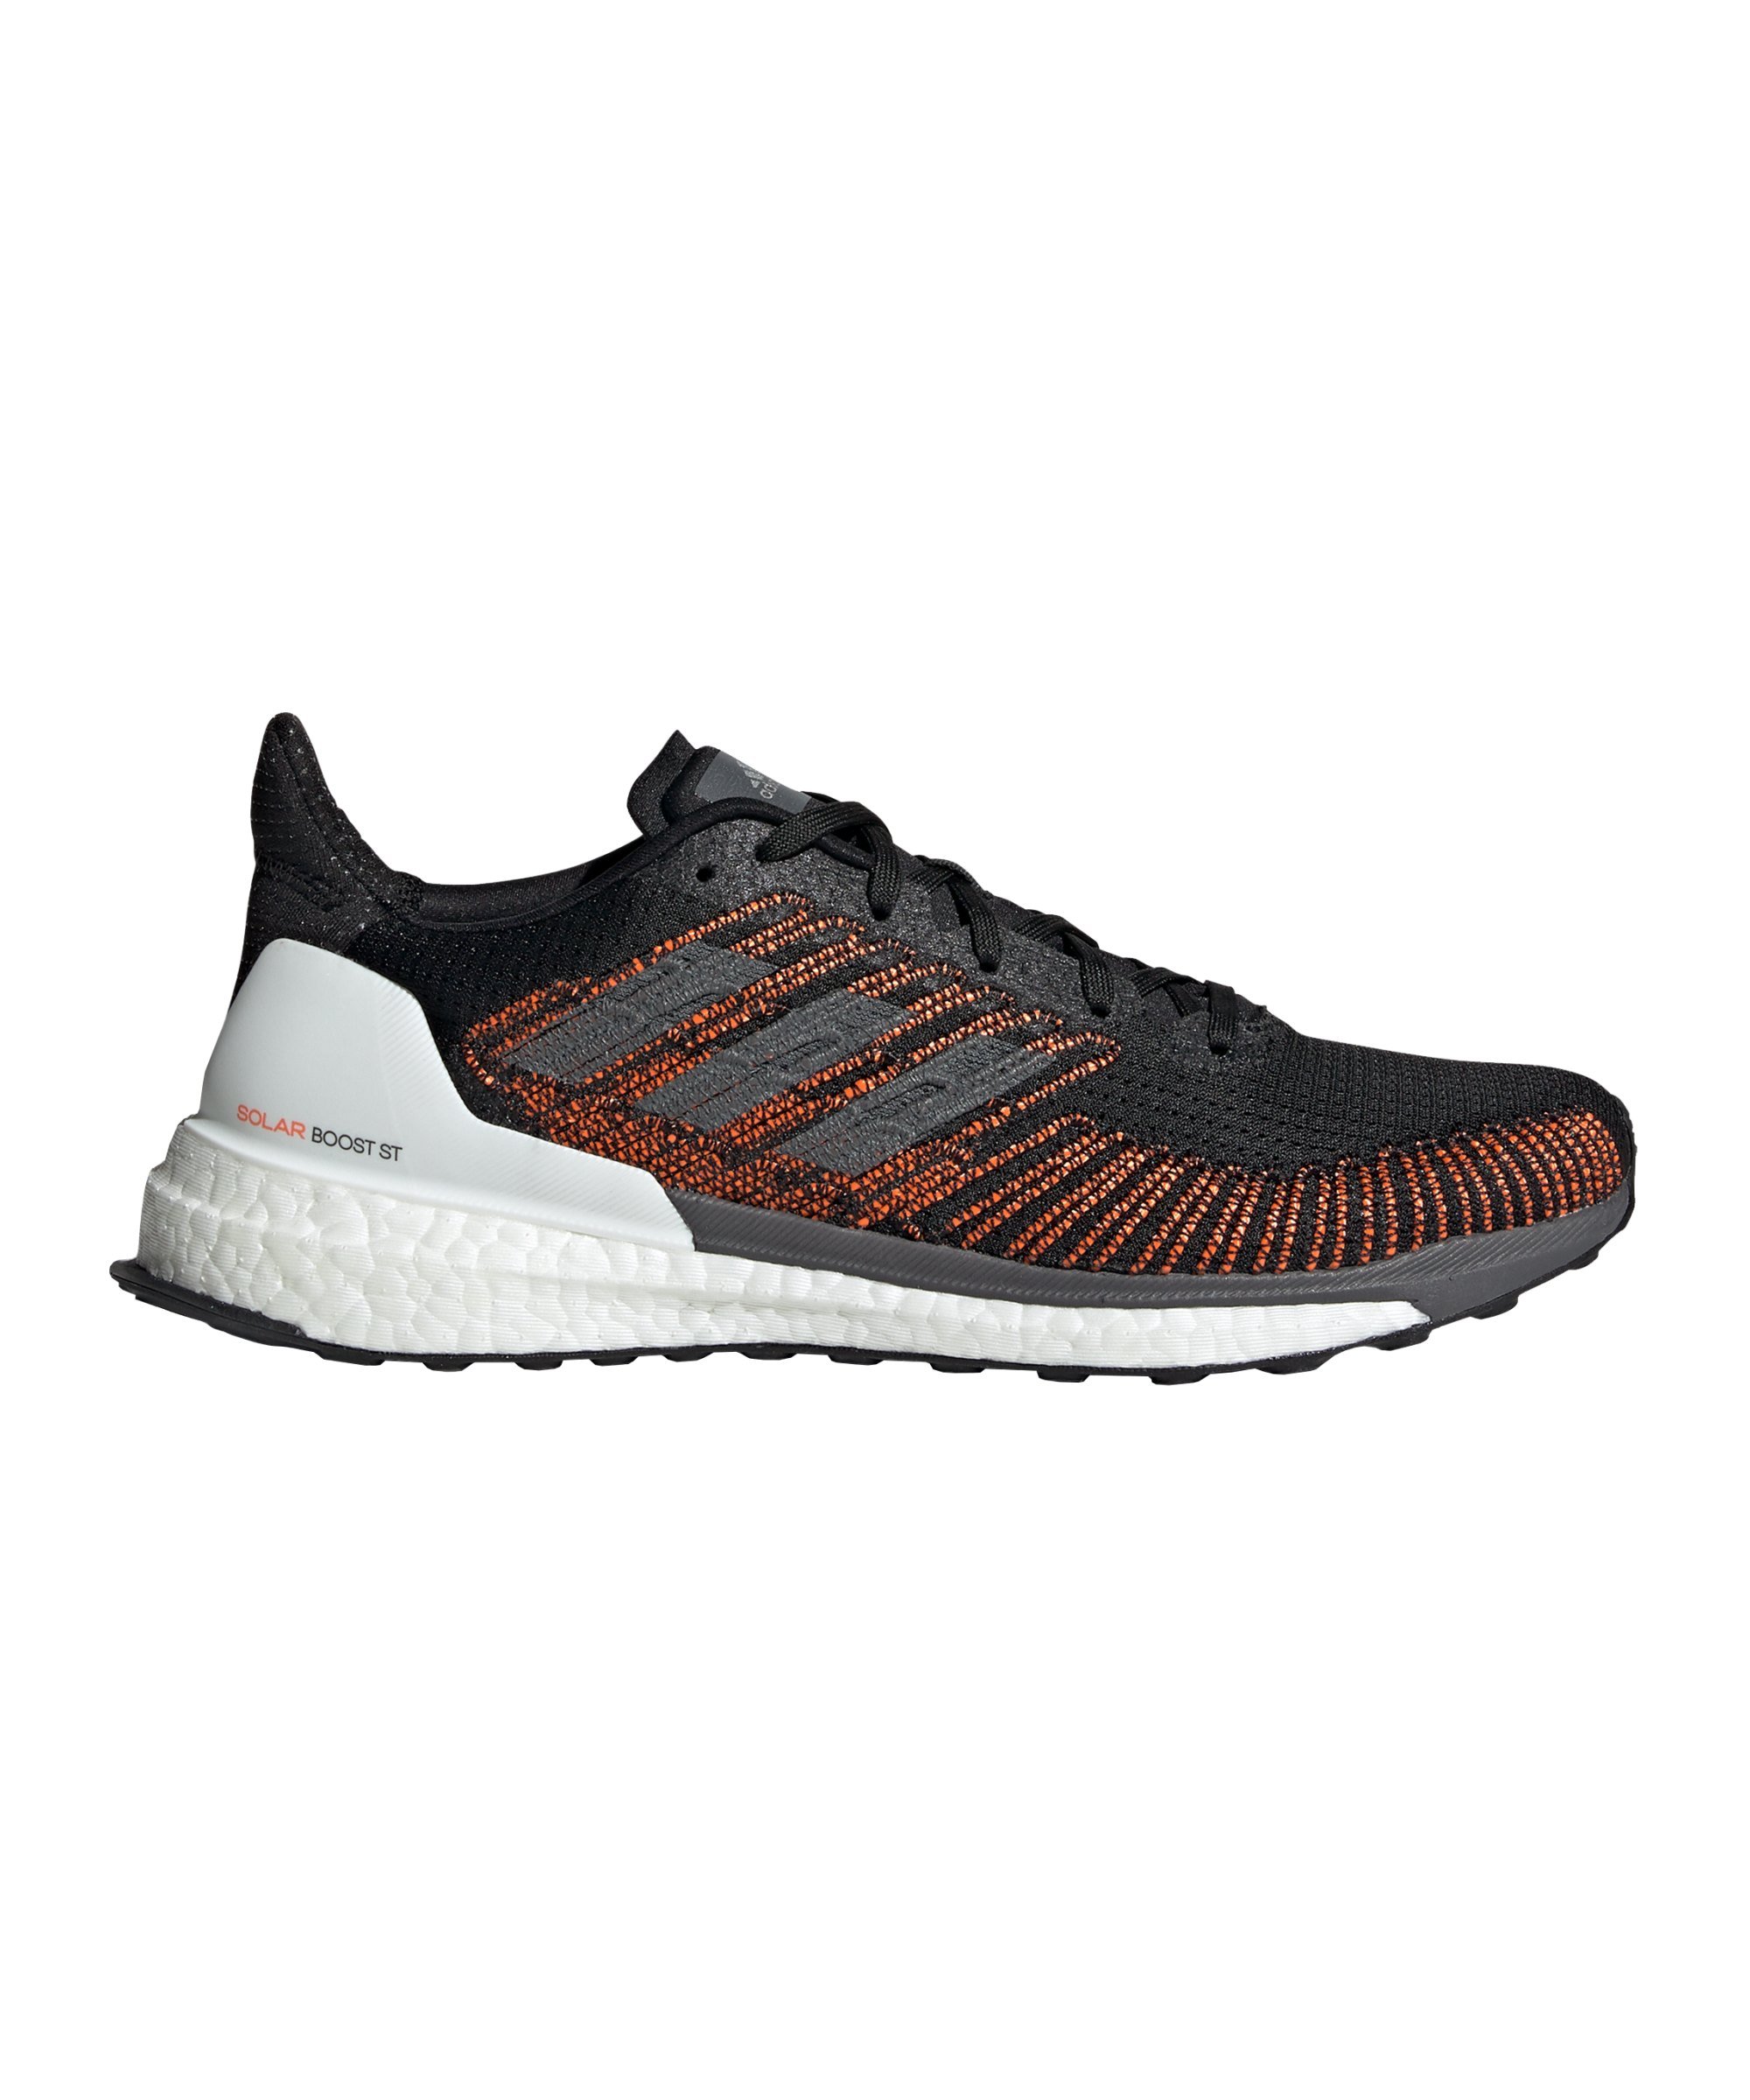 adidas Solar Boost ST 19 Running Schwarz Orange